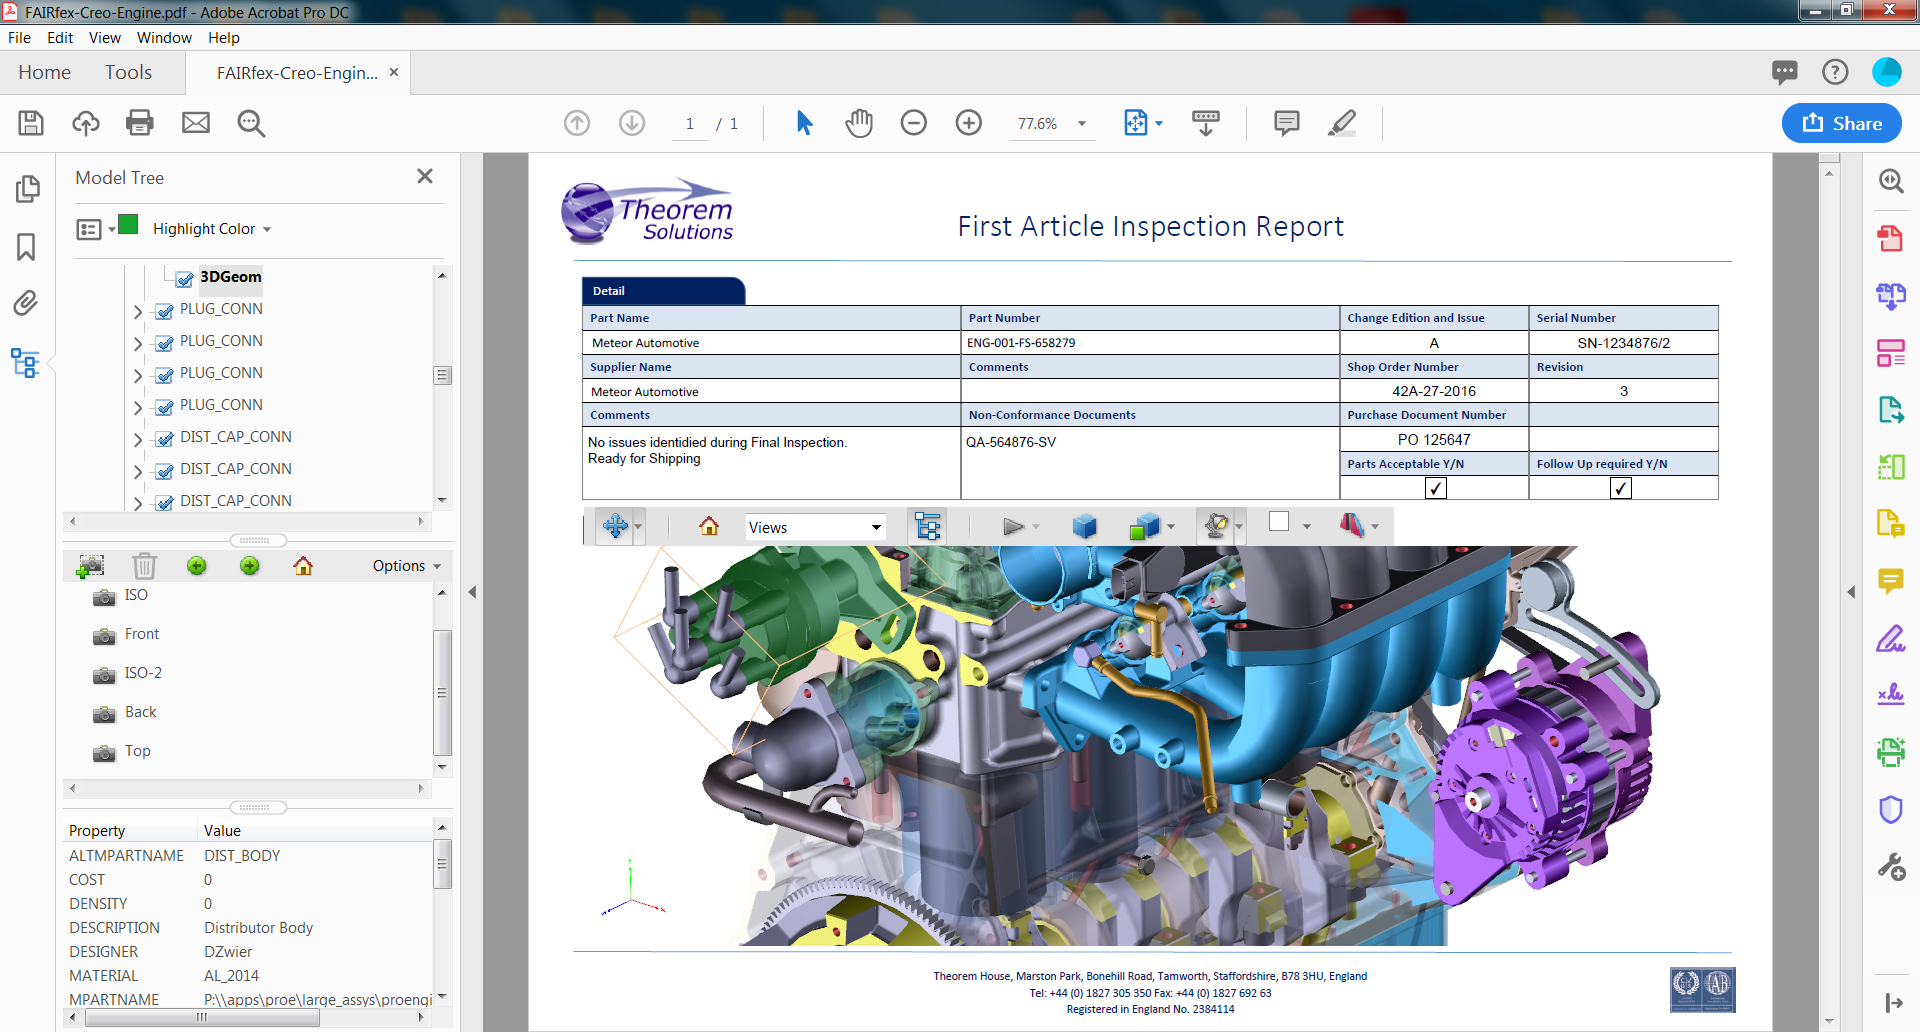 3DPDF - First Article Inspection Report